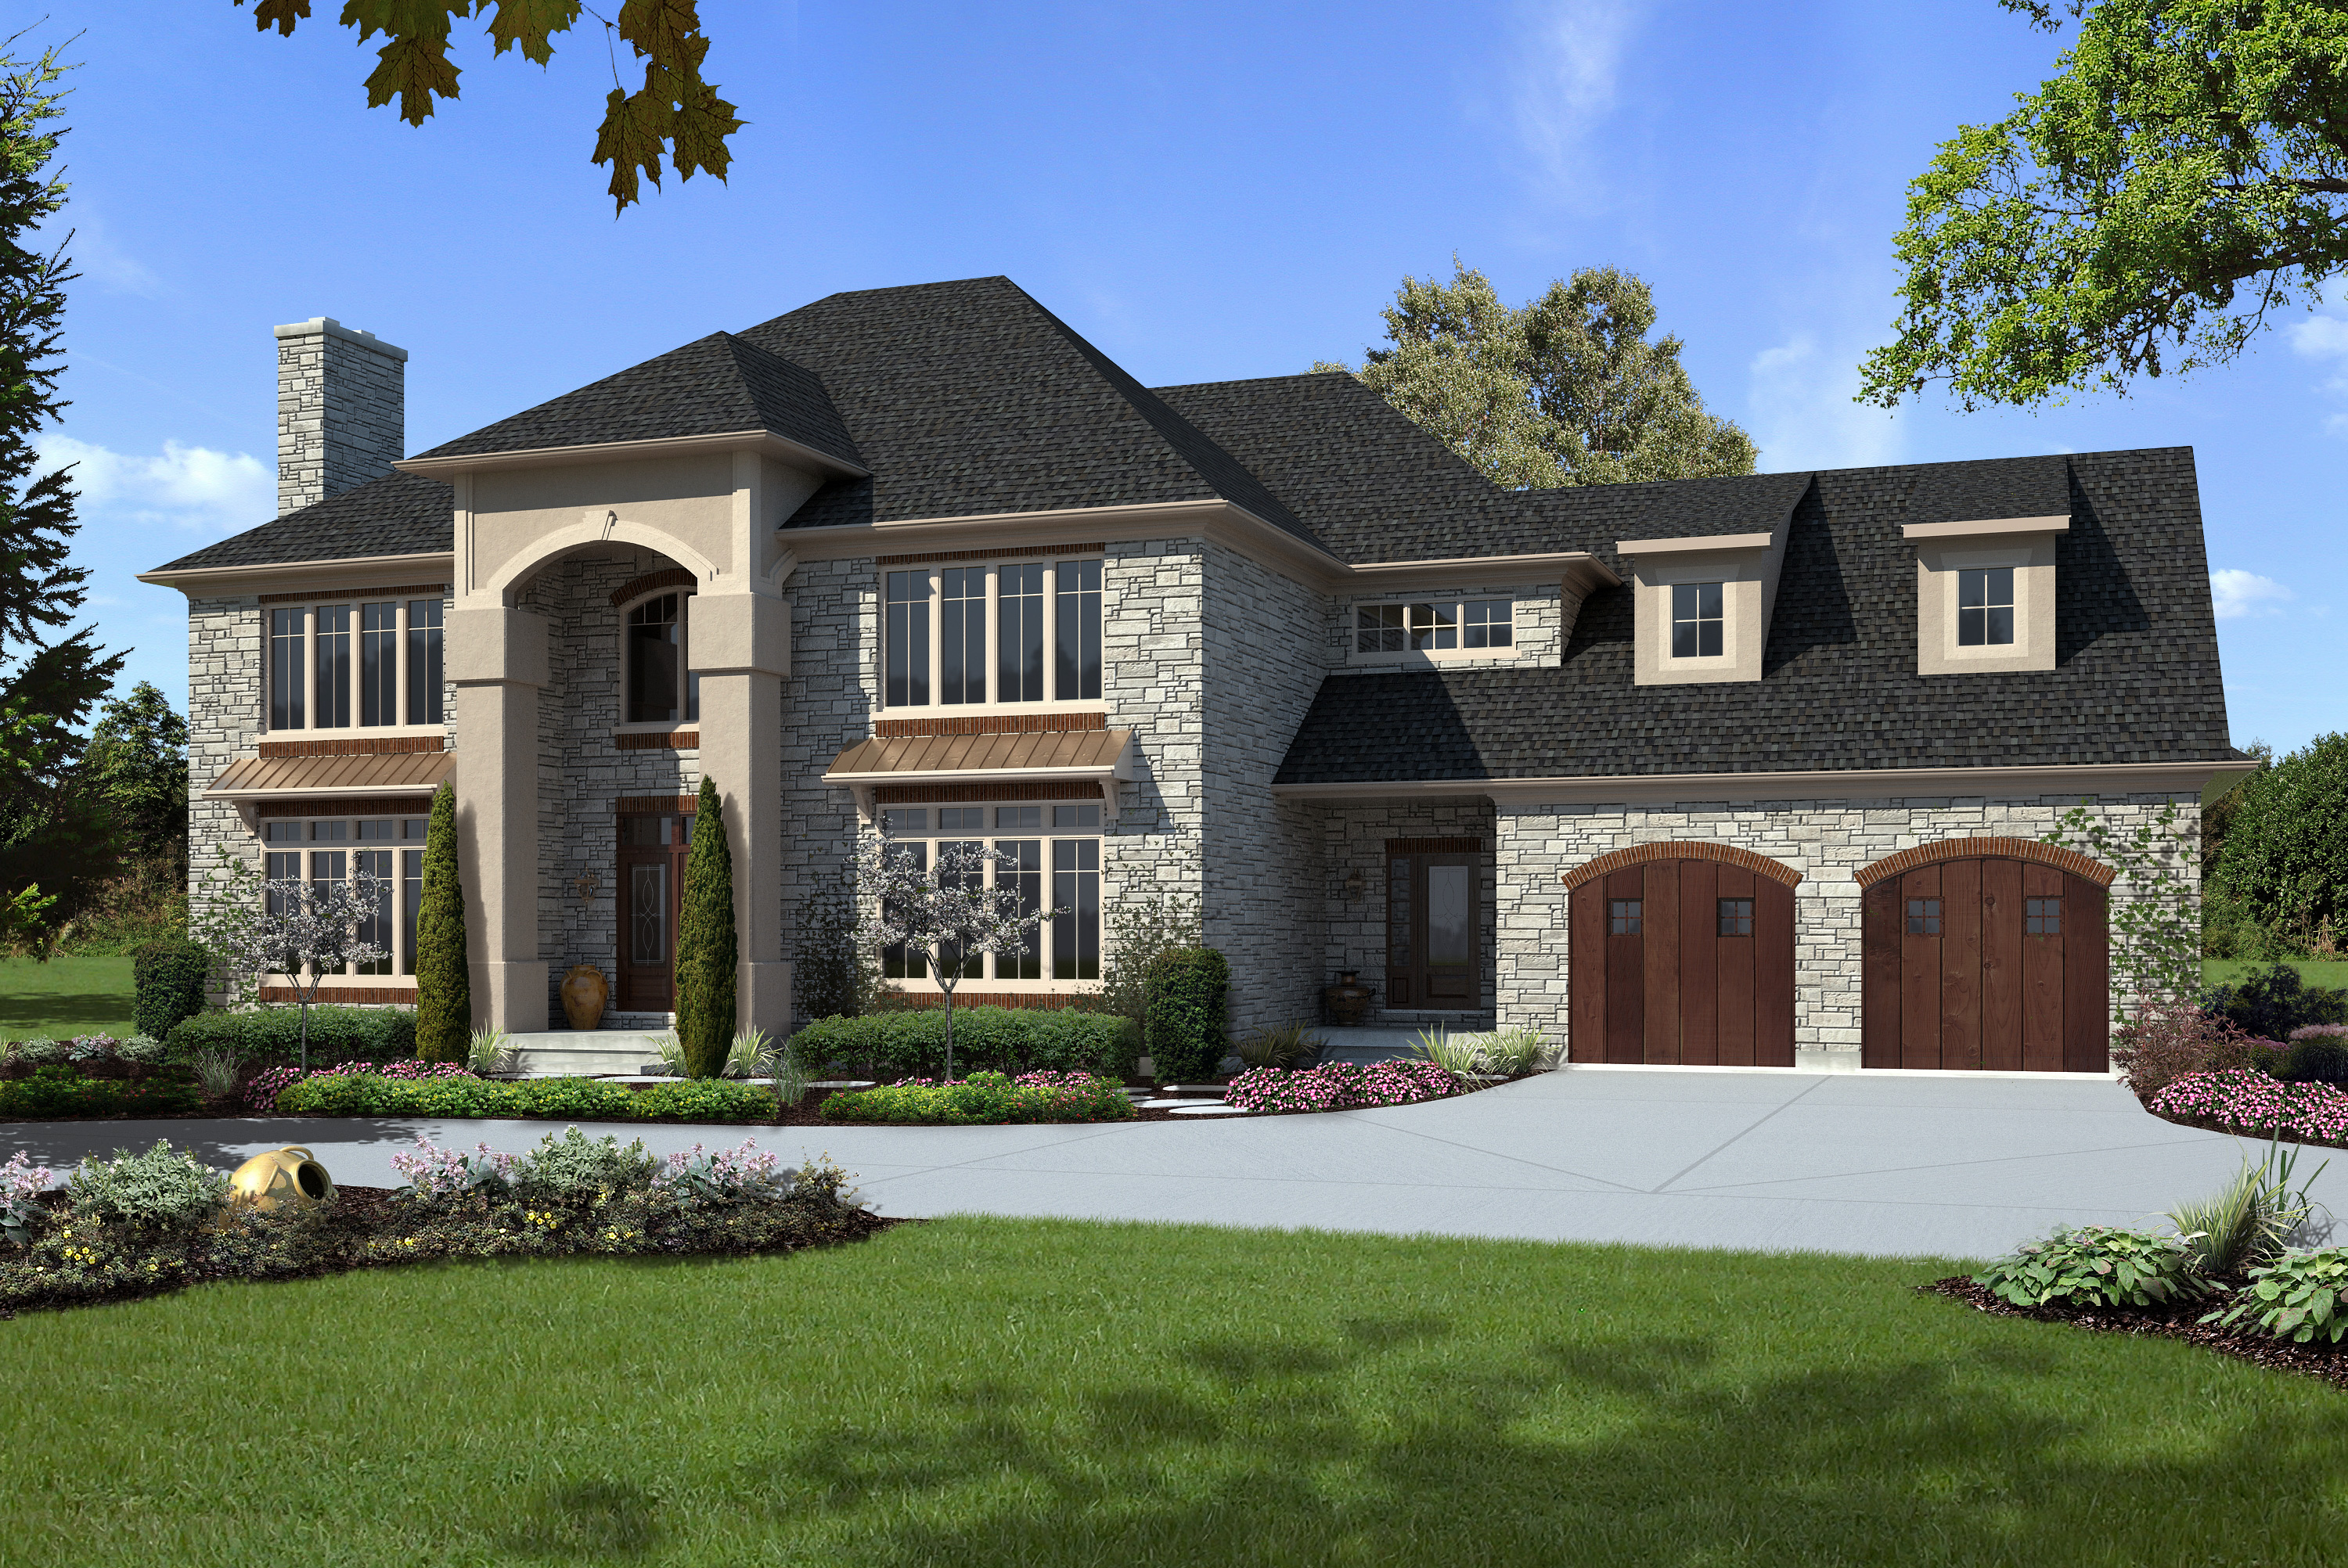 Custom Home Designs  Custom House Plans  Custom Home Plans  Custom Floor  Plans at Houseplans net. Custom Home Designs  Custom House Plans  Custom Home Plans  Custom